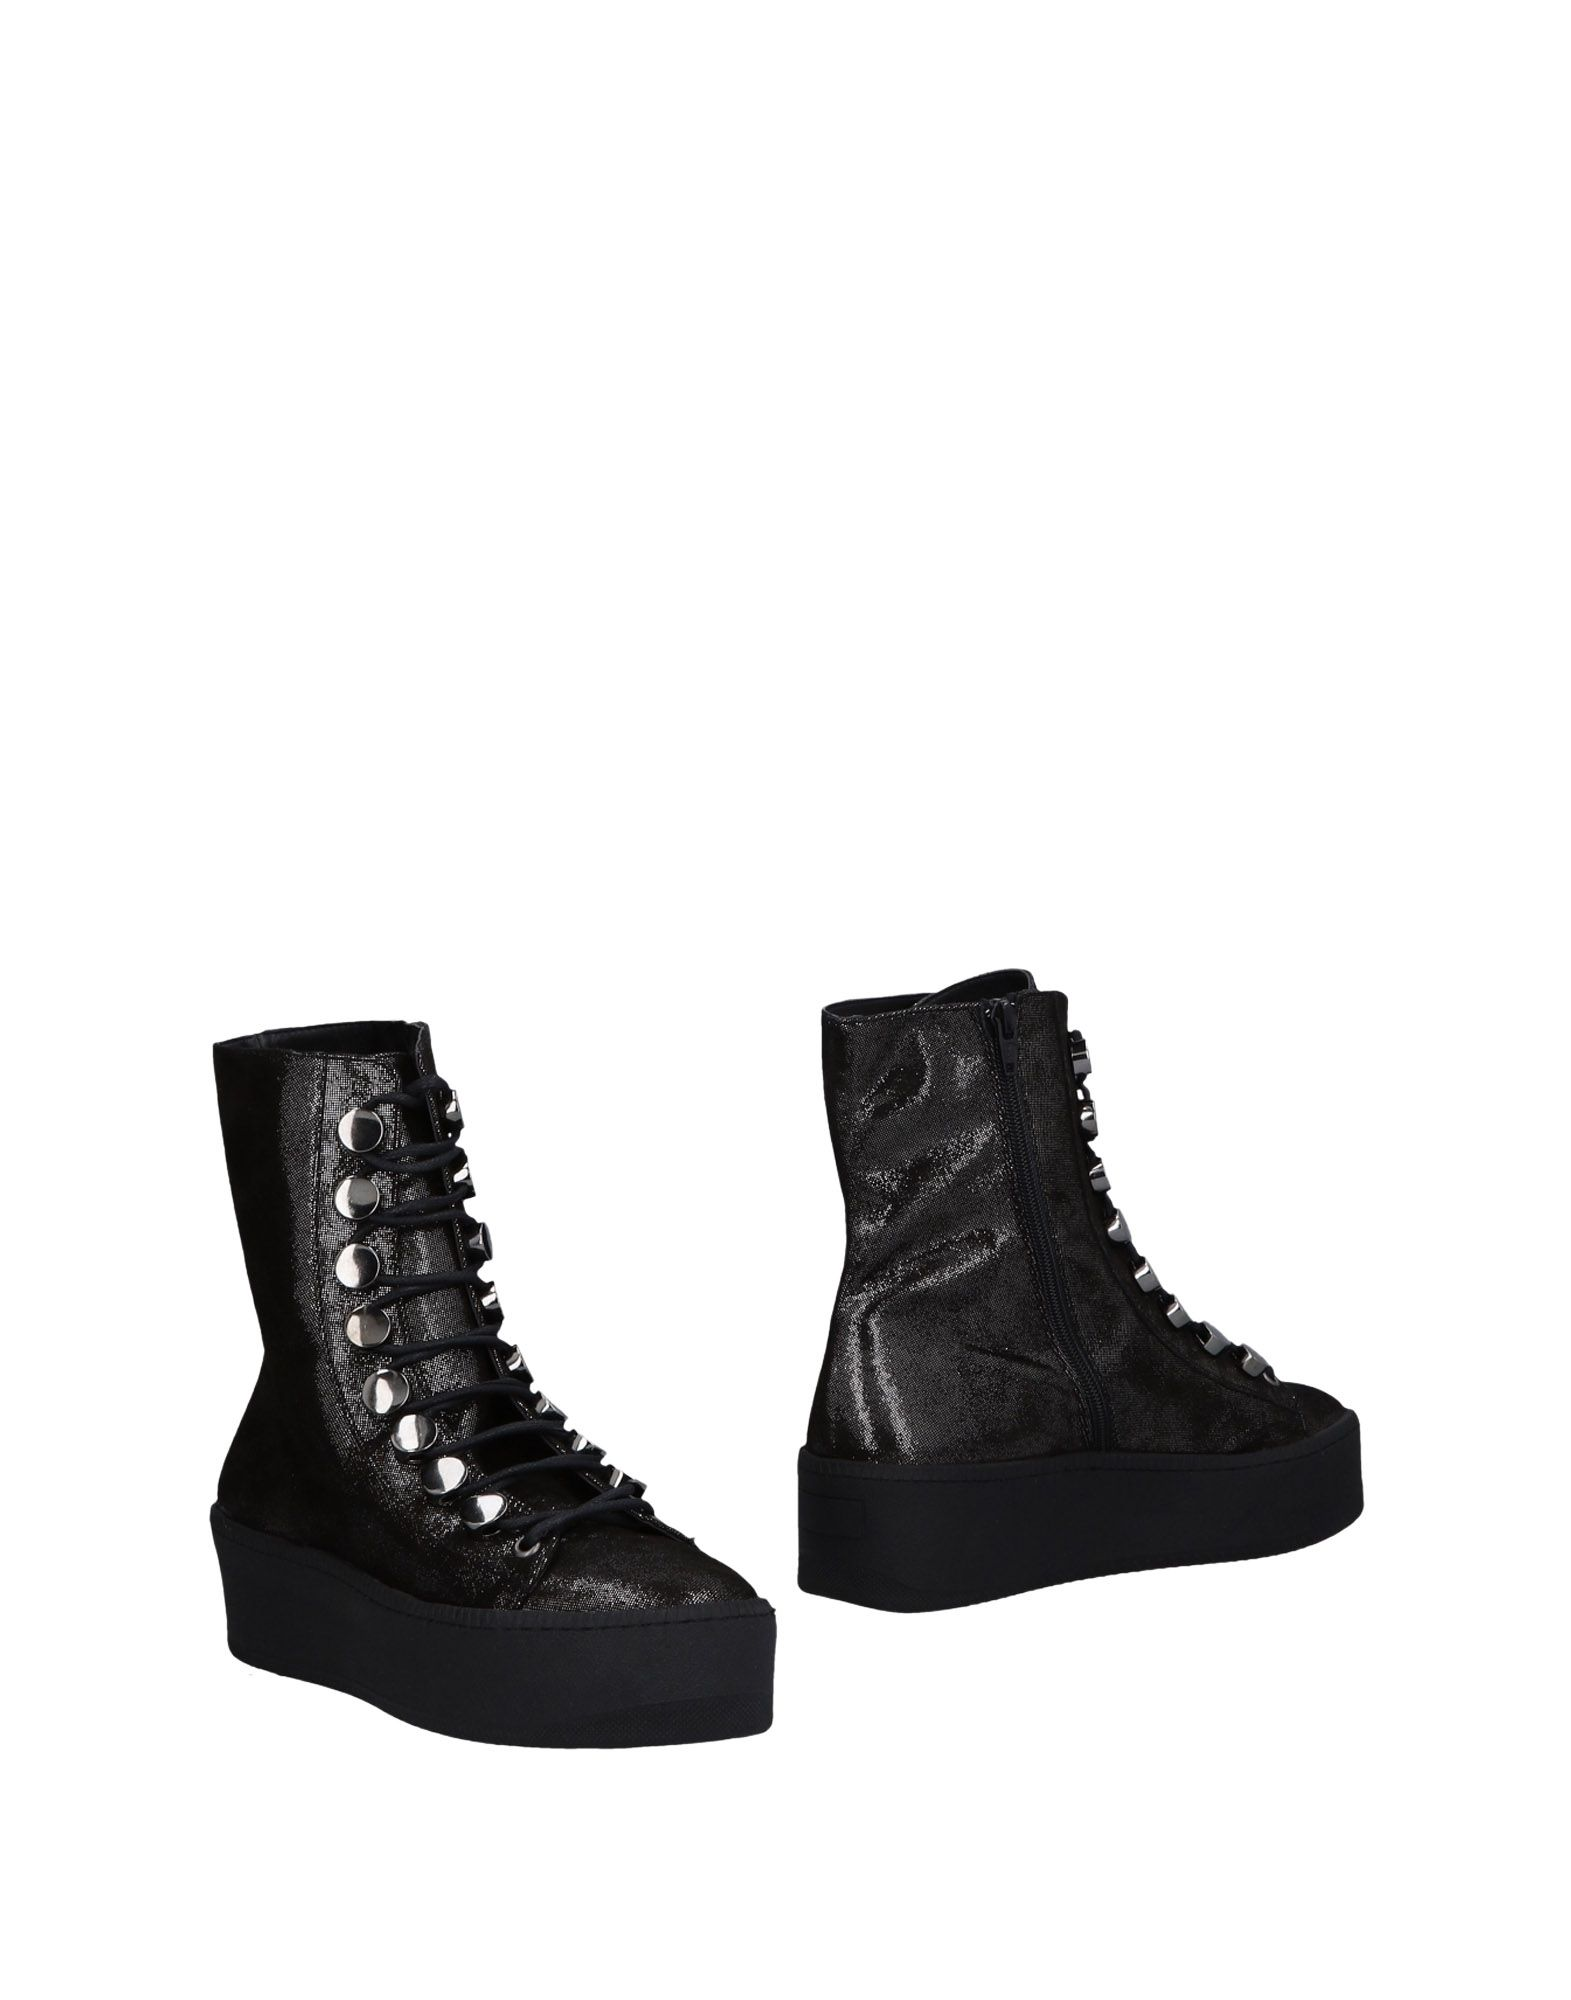 Formentini Ankle Boot - Women on Formentini Ankle Boots online on Women  Australia - 11479404NI 912b3f